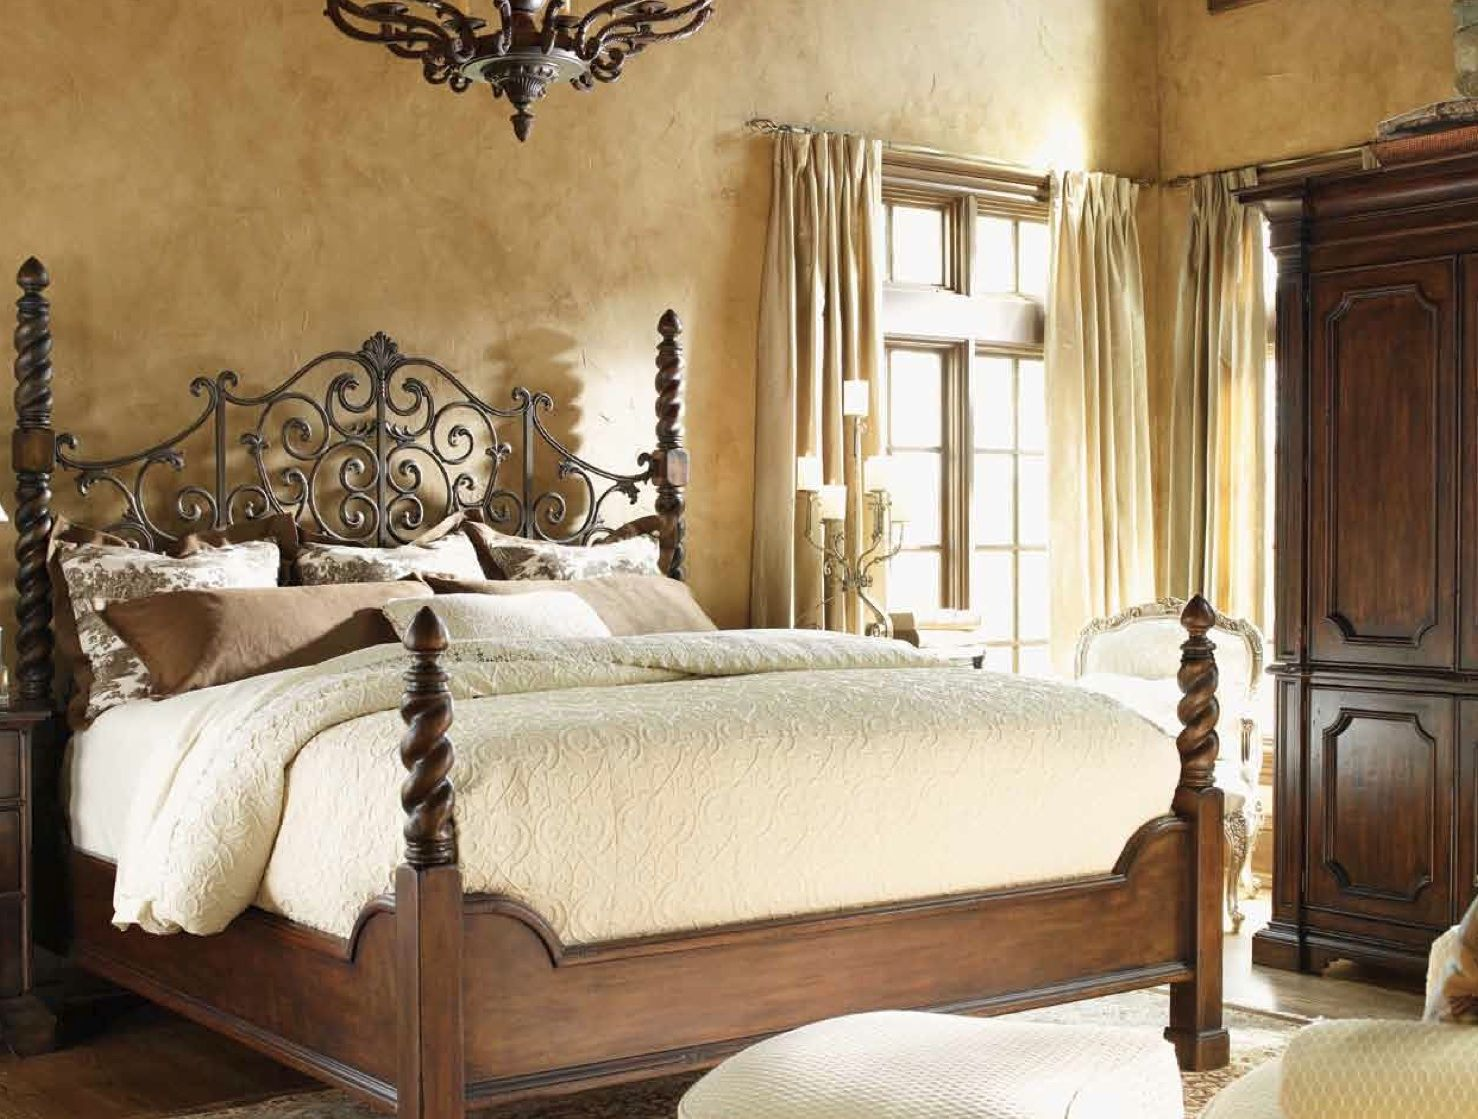 Tuscan Bedroom Decorating Ideas Tuscan Bedroom Drexel Decorating Our New House Pinterest